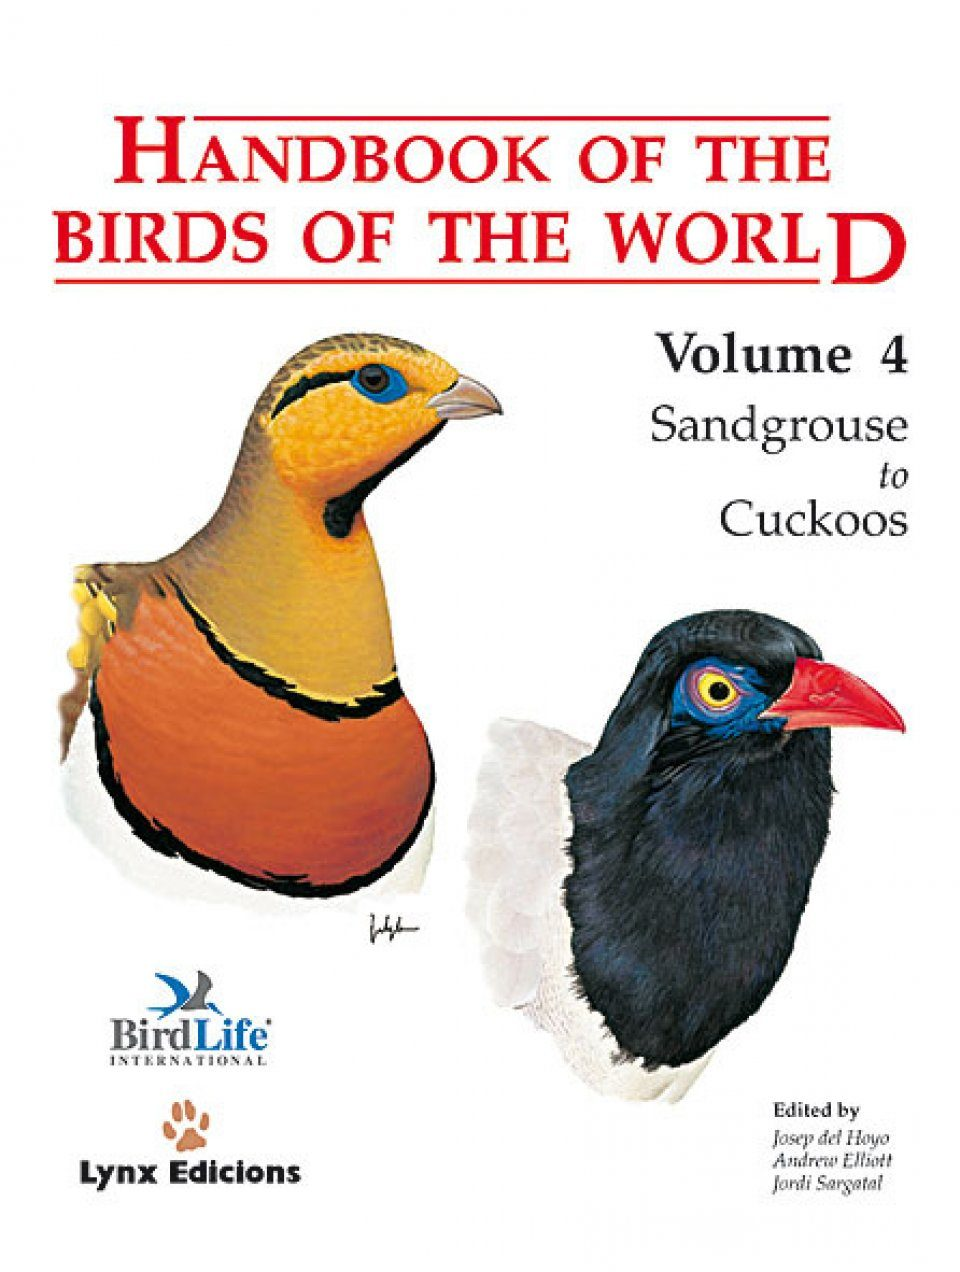 Handbook of the Birds of the World, Volume 4: Sandgrouse to Cuckoos